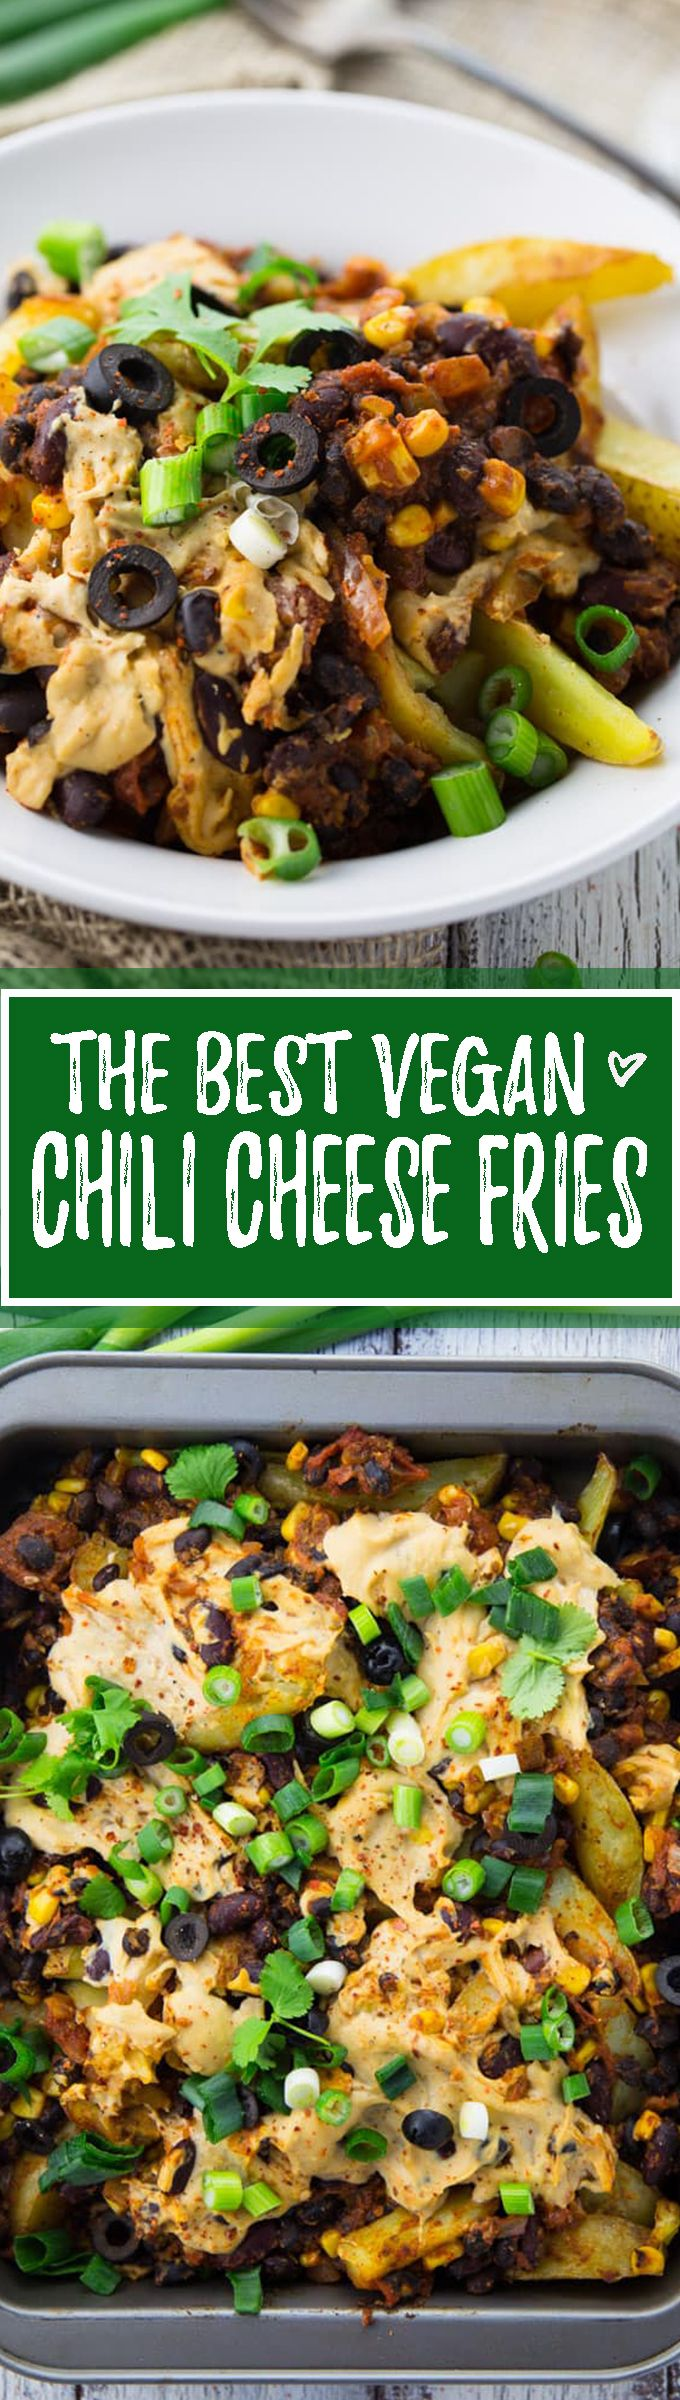 These vegan chili cheese fries are the perfect comfort food. The best thing is that they're not oily and greasy like the classic junk food! The perfect vegan dinner when you feel like comfort food! <3 | veganheaven.org